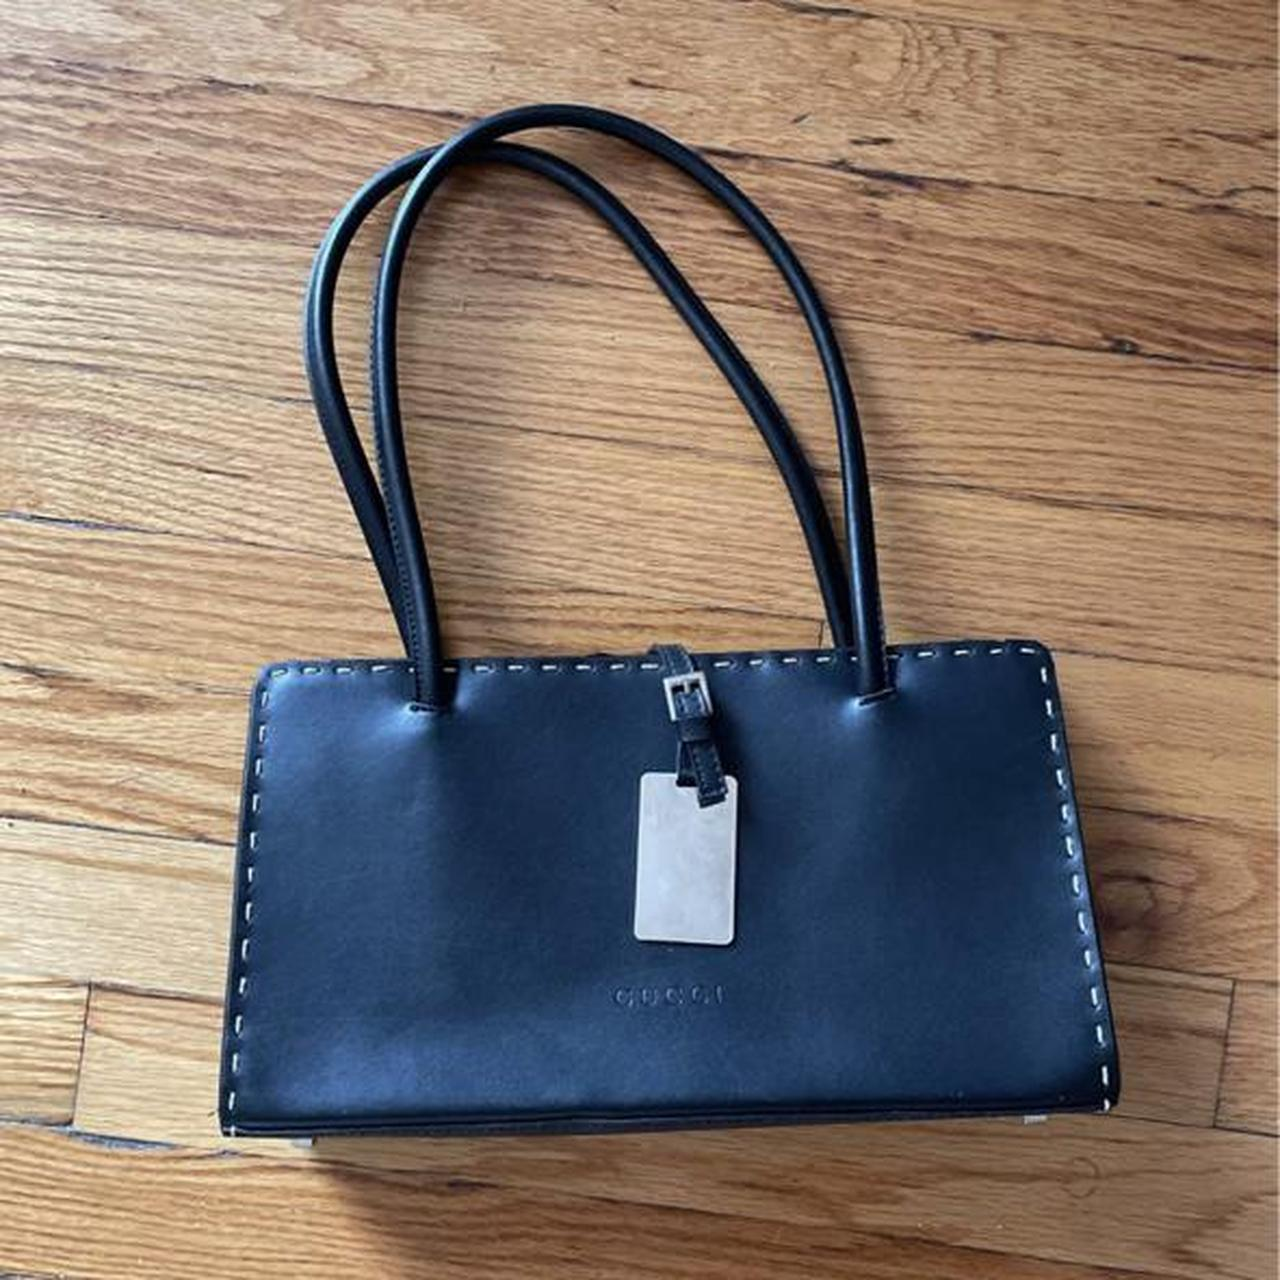 Product Image 1 - Thrifted black Gucci purse